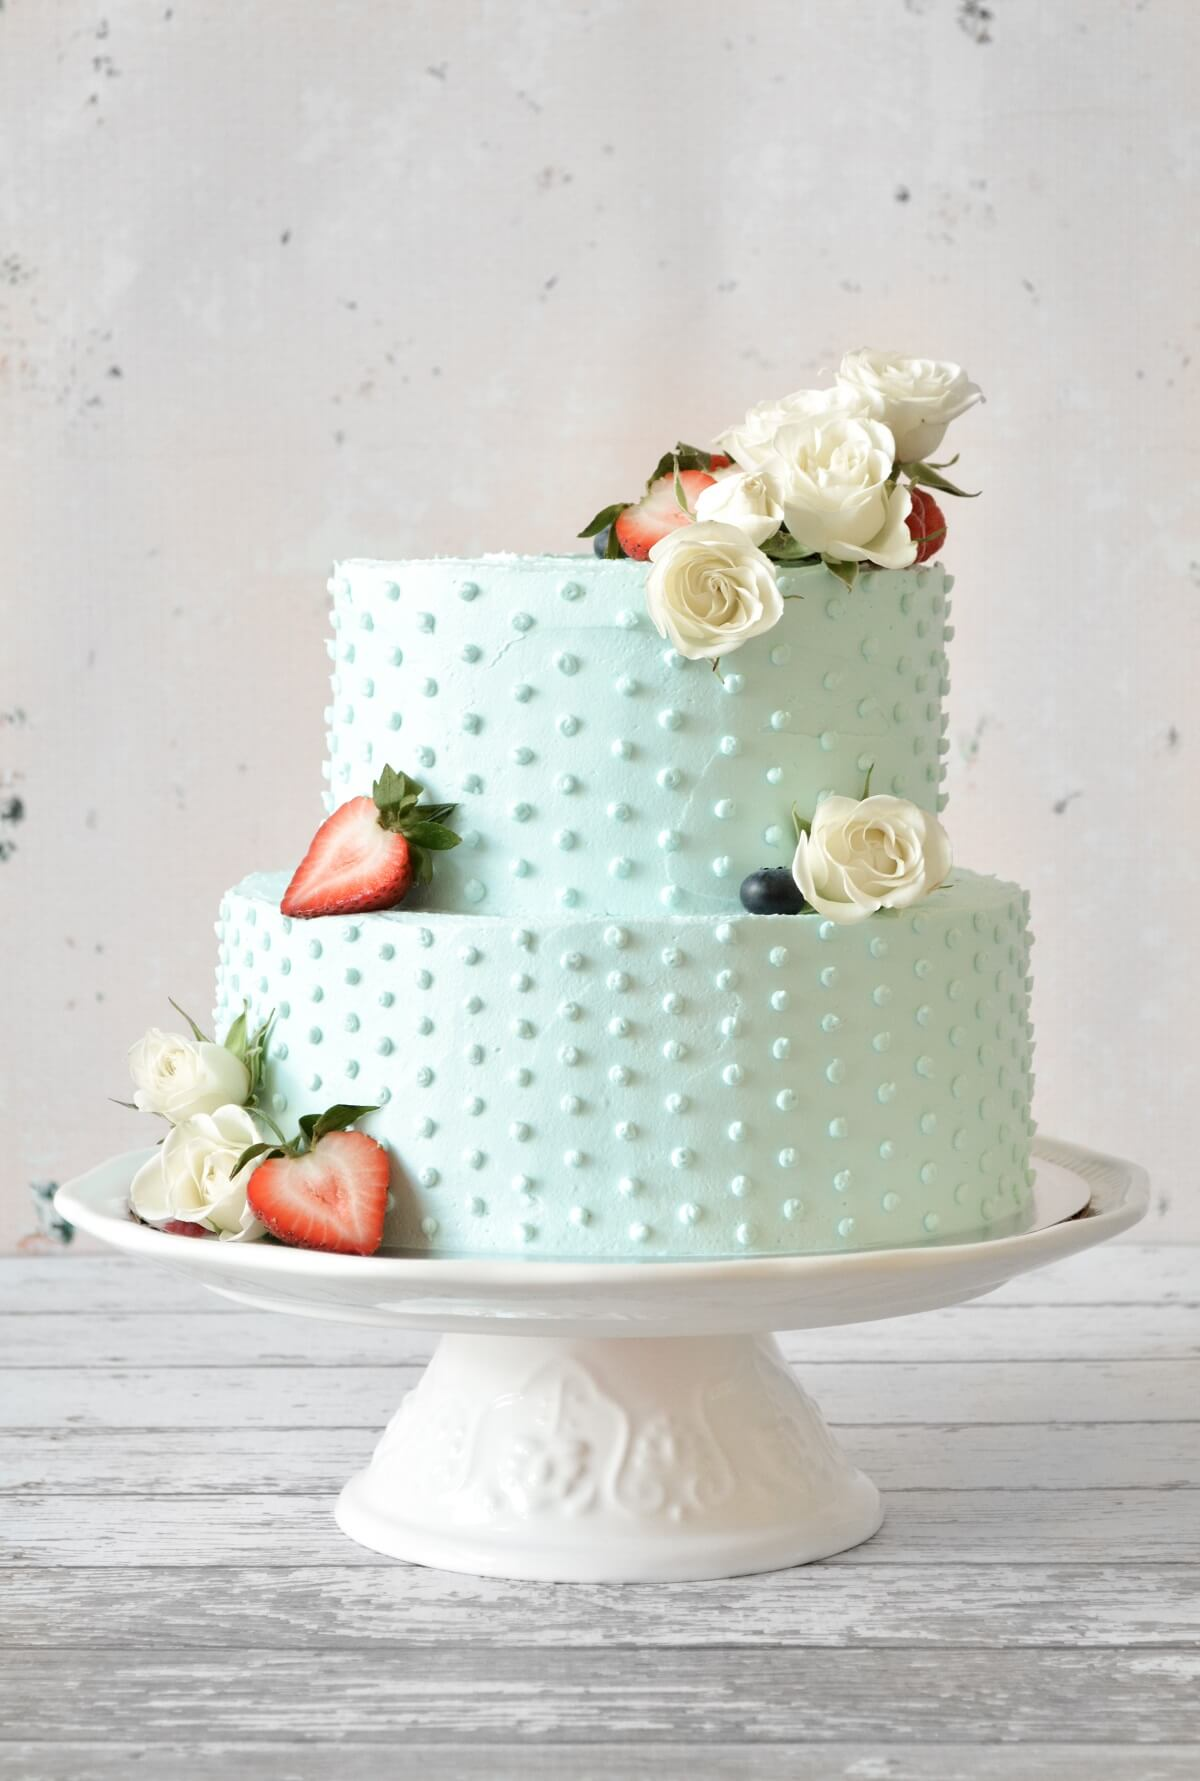 A red, white and blue, two-tiered cake with blue buttercream, swiss dots, strawberries and white roses.